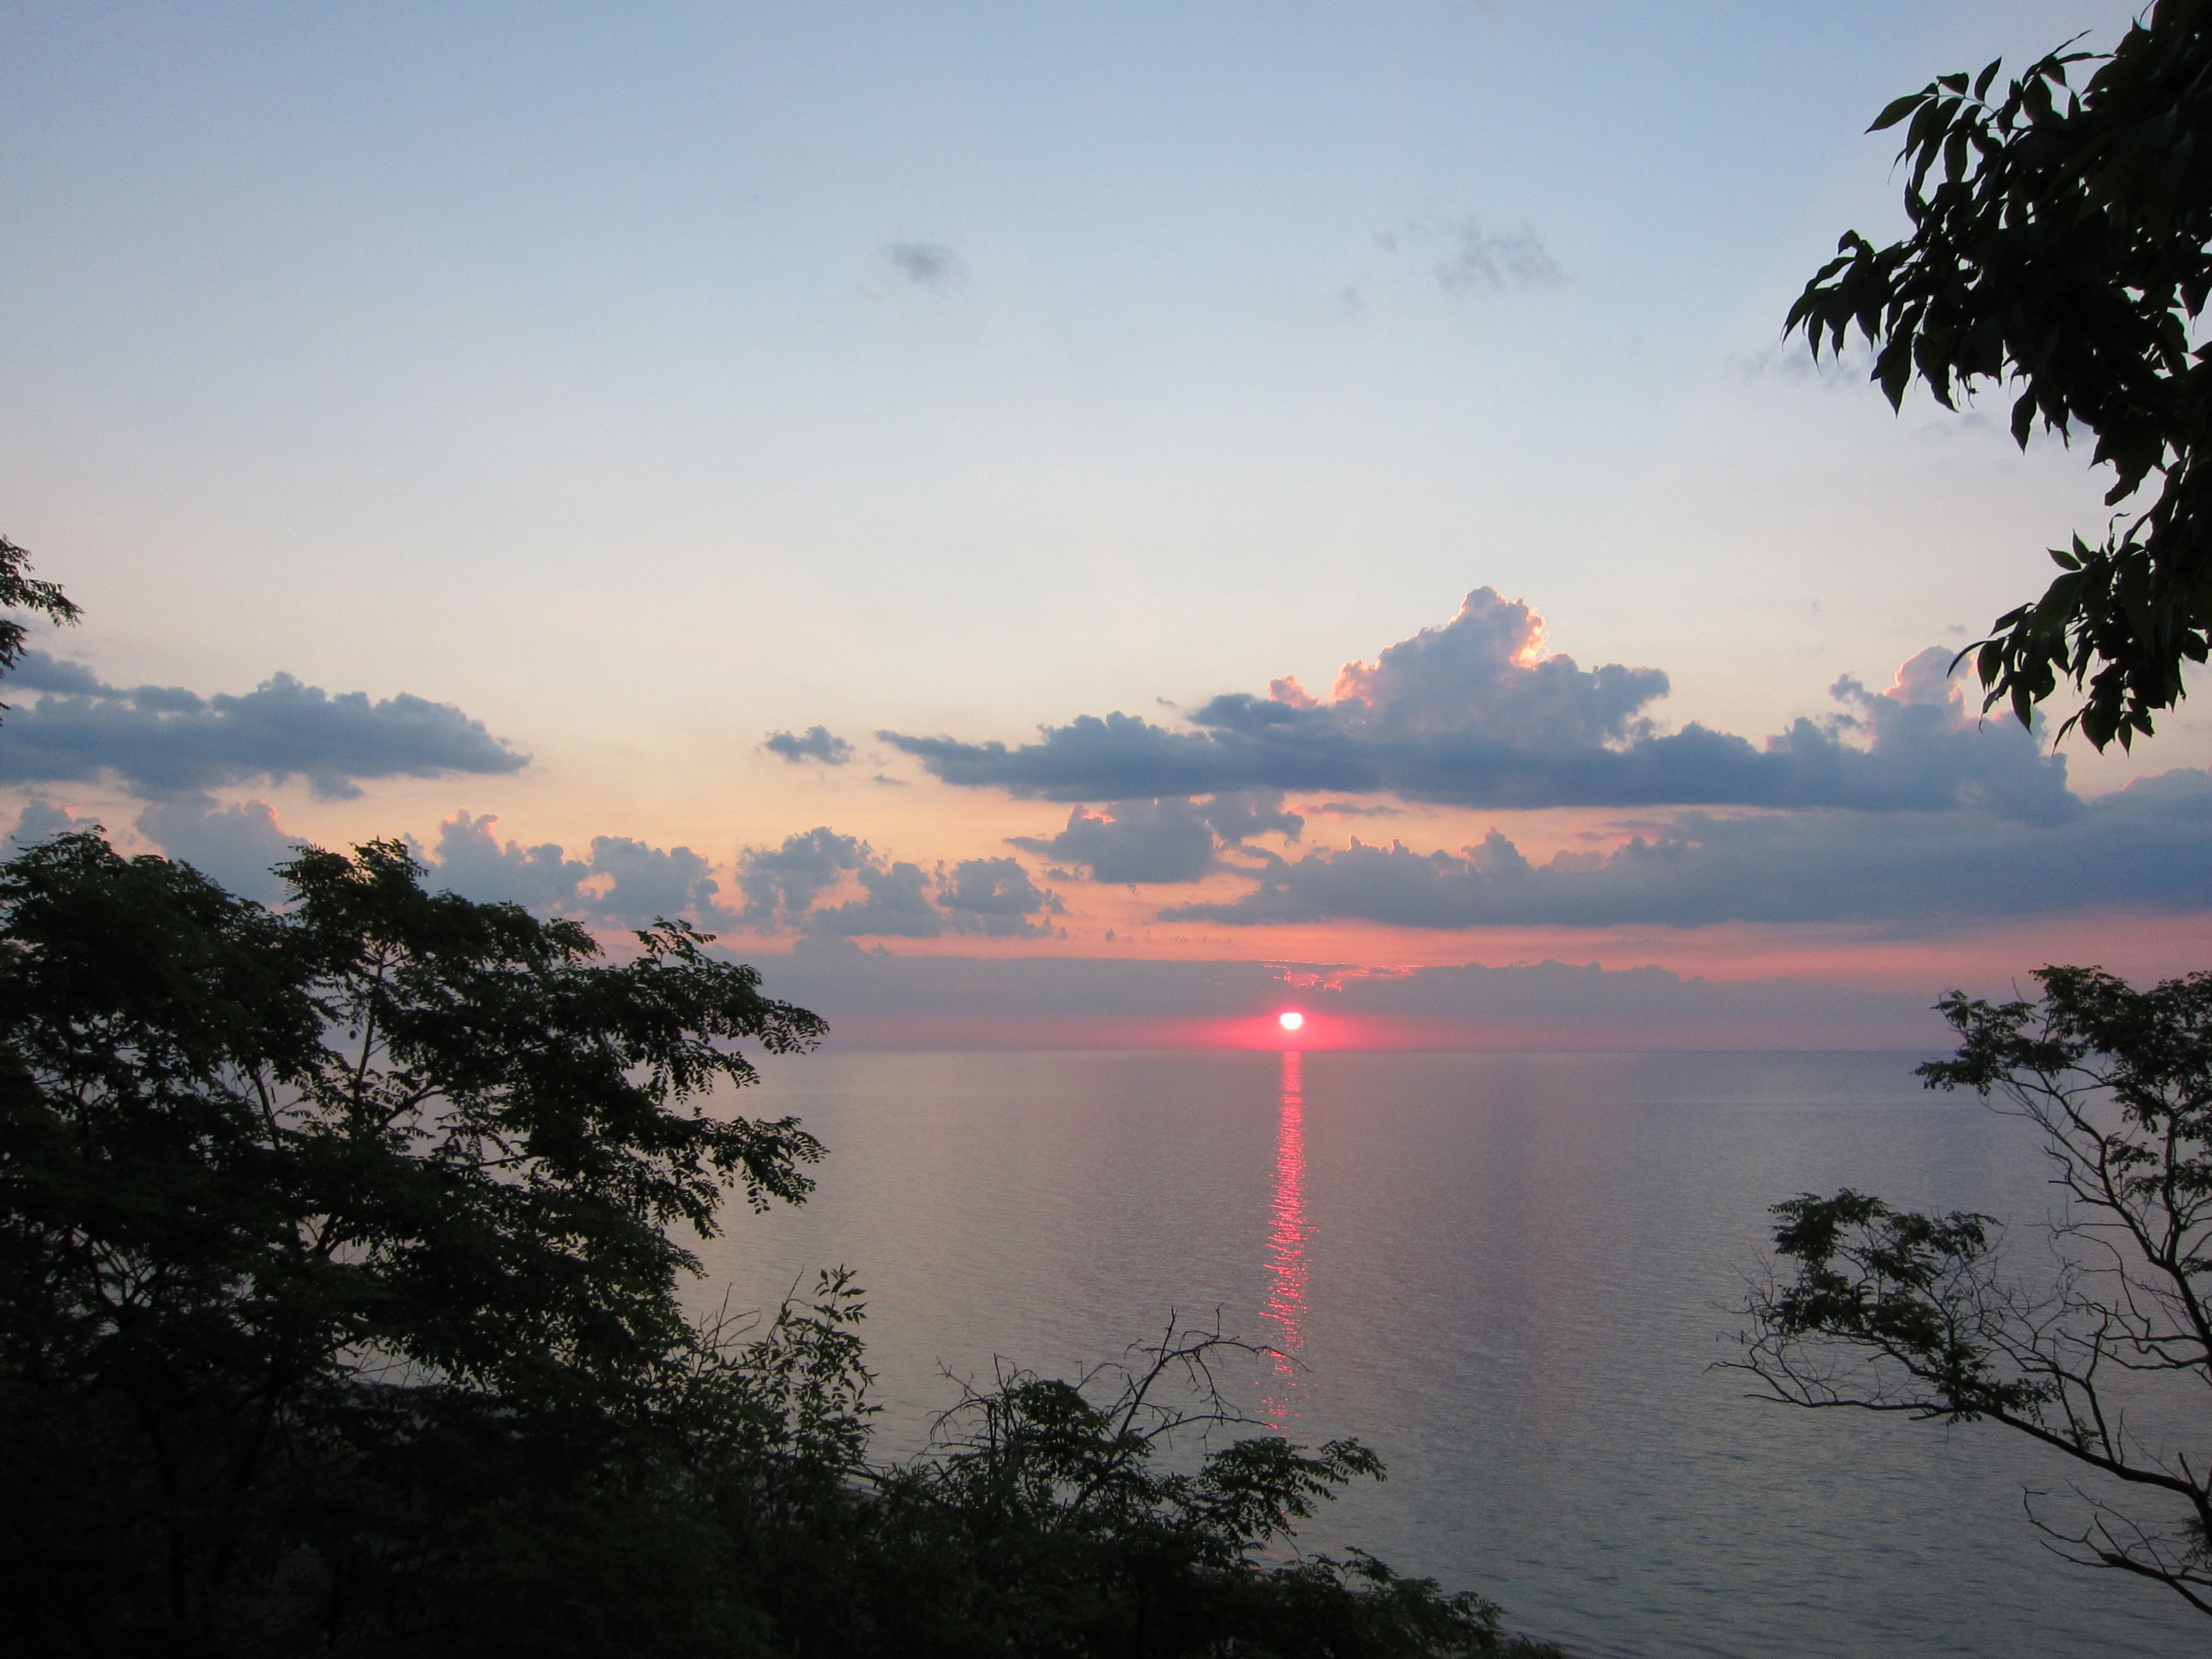 71312 sunrise over lake michigan from virmond park in